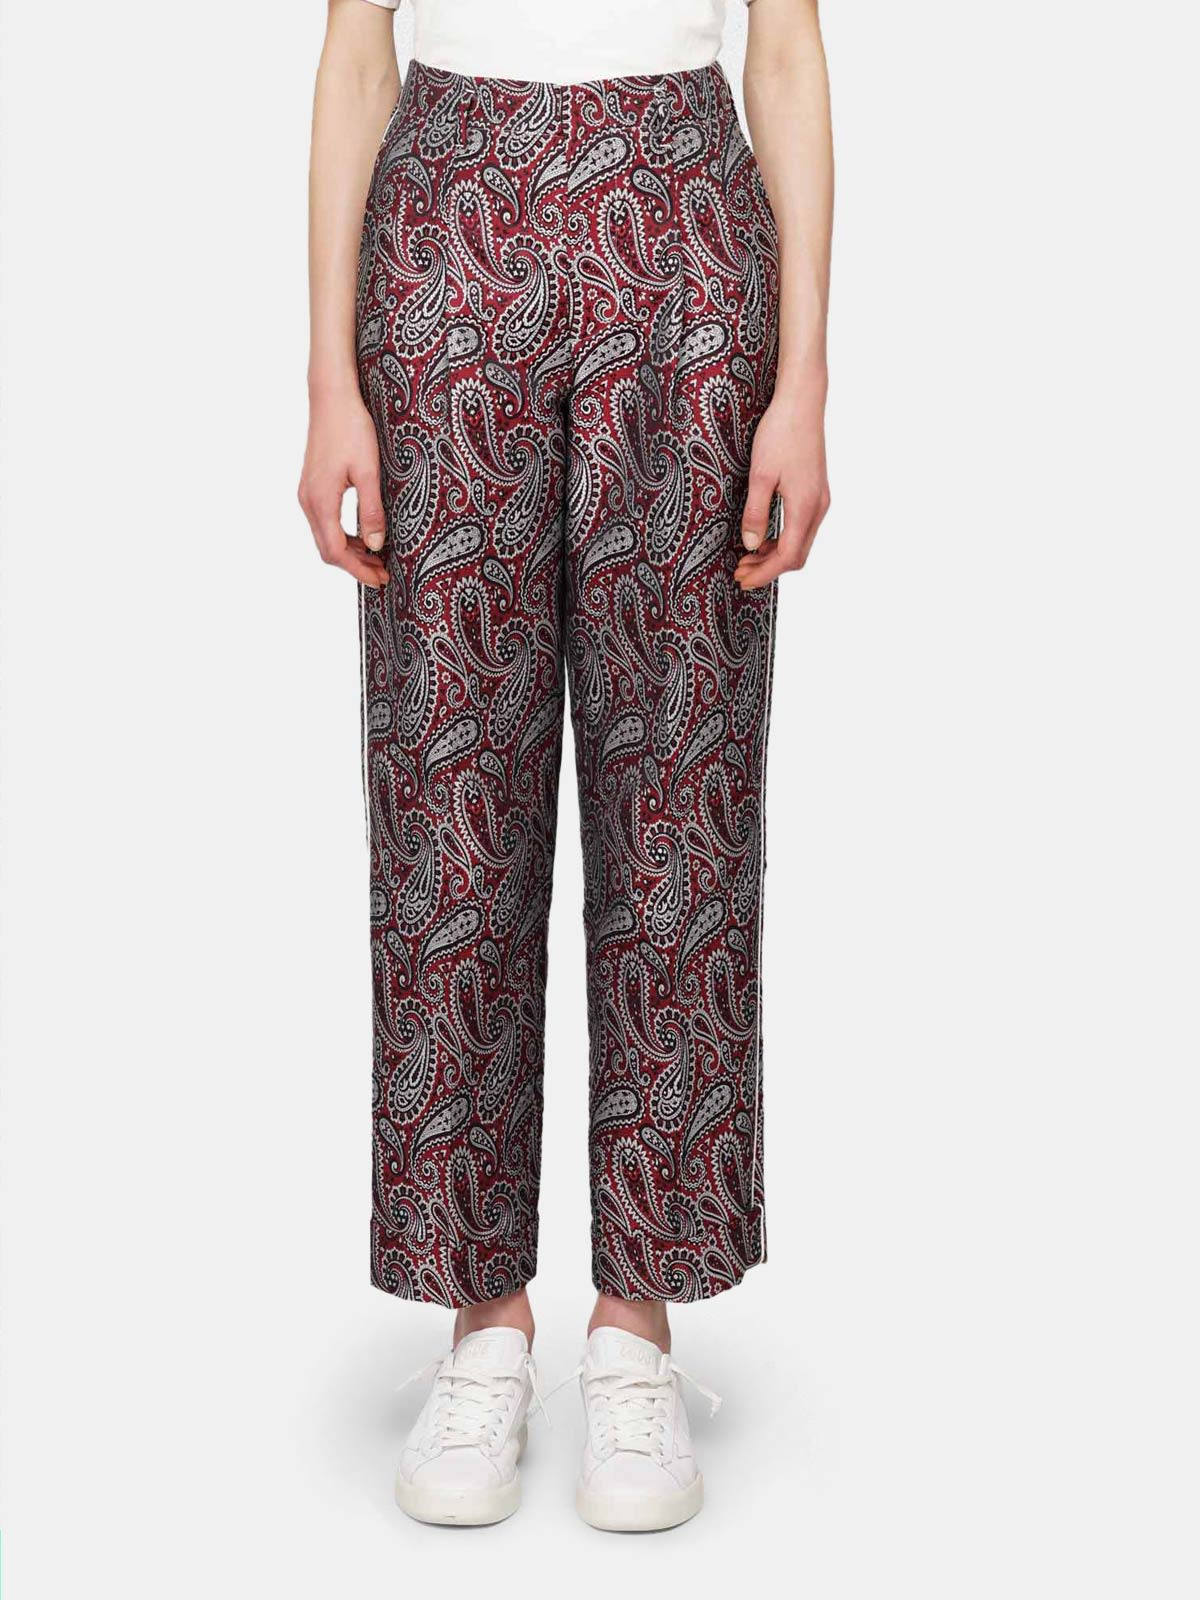 Golden Goose - Sally trousers with paisley jacquard motif   in